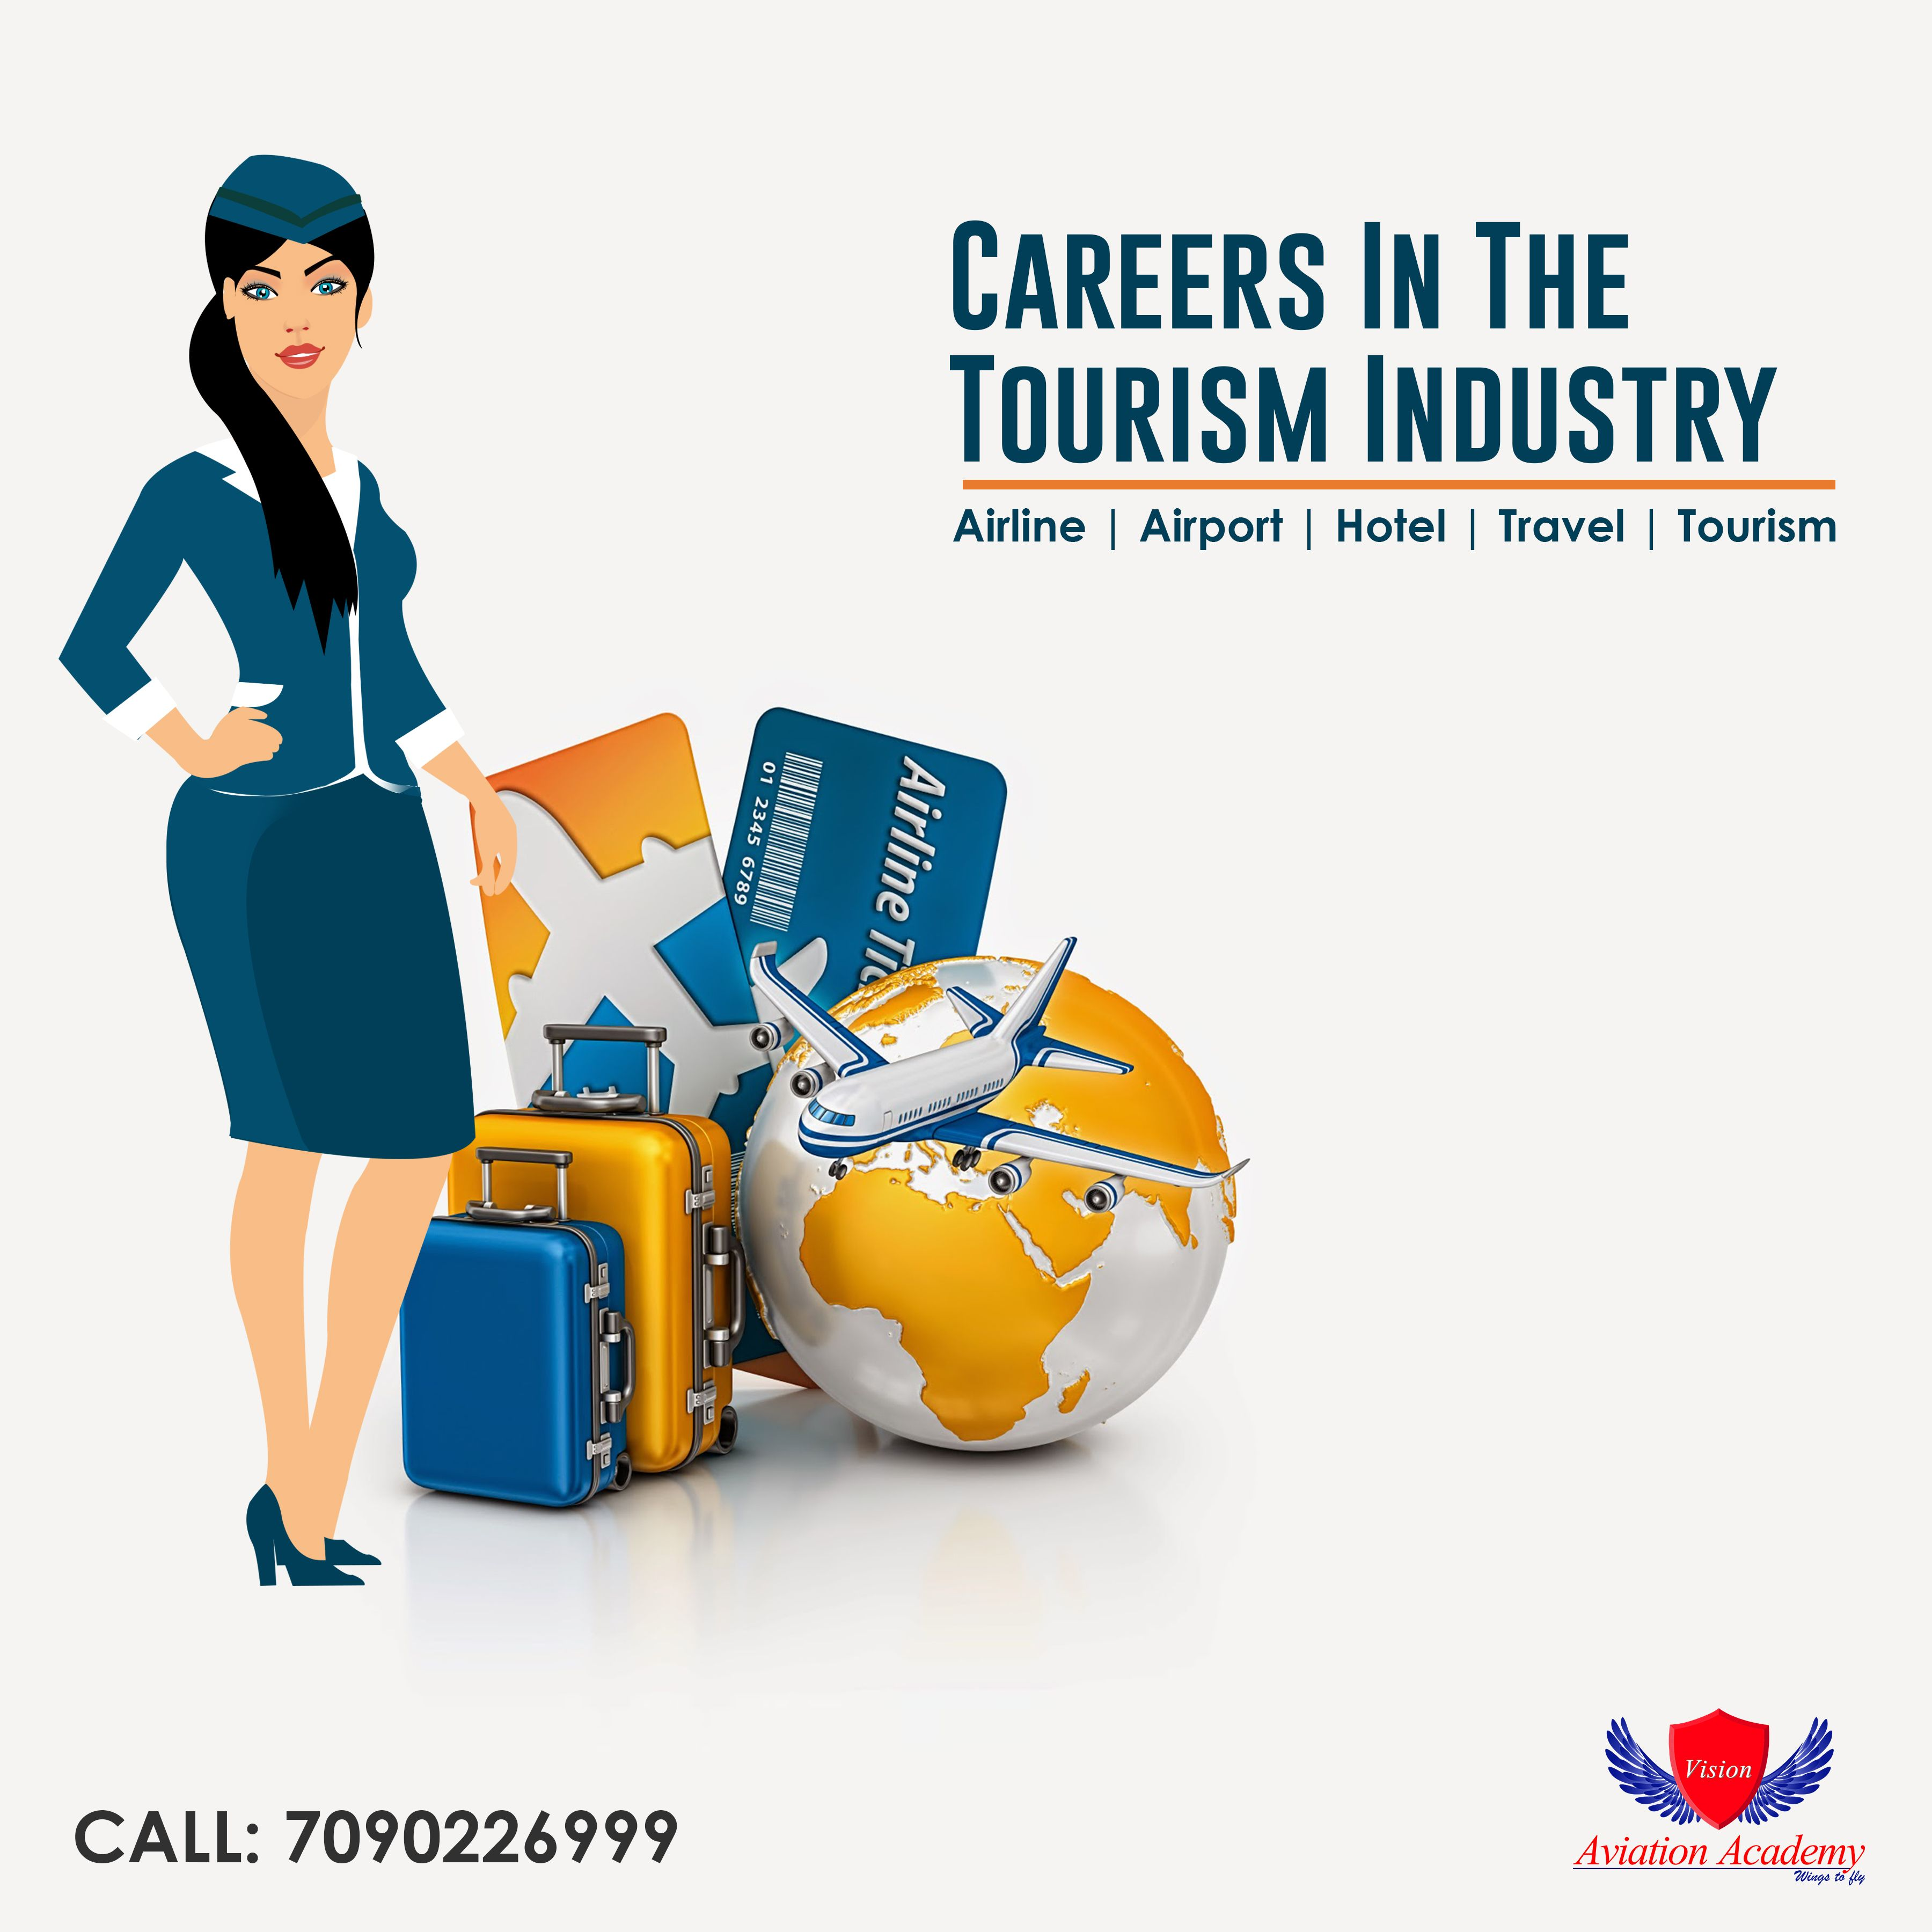 Careers in the tourism industry vision aviation academy get careers in the tourism industry vision aviation academy get certification training in airline xflitez Image collections